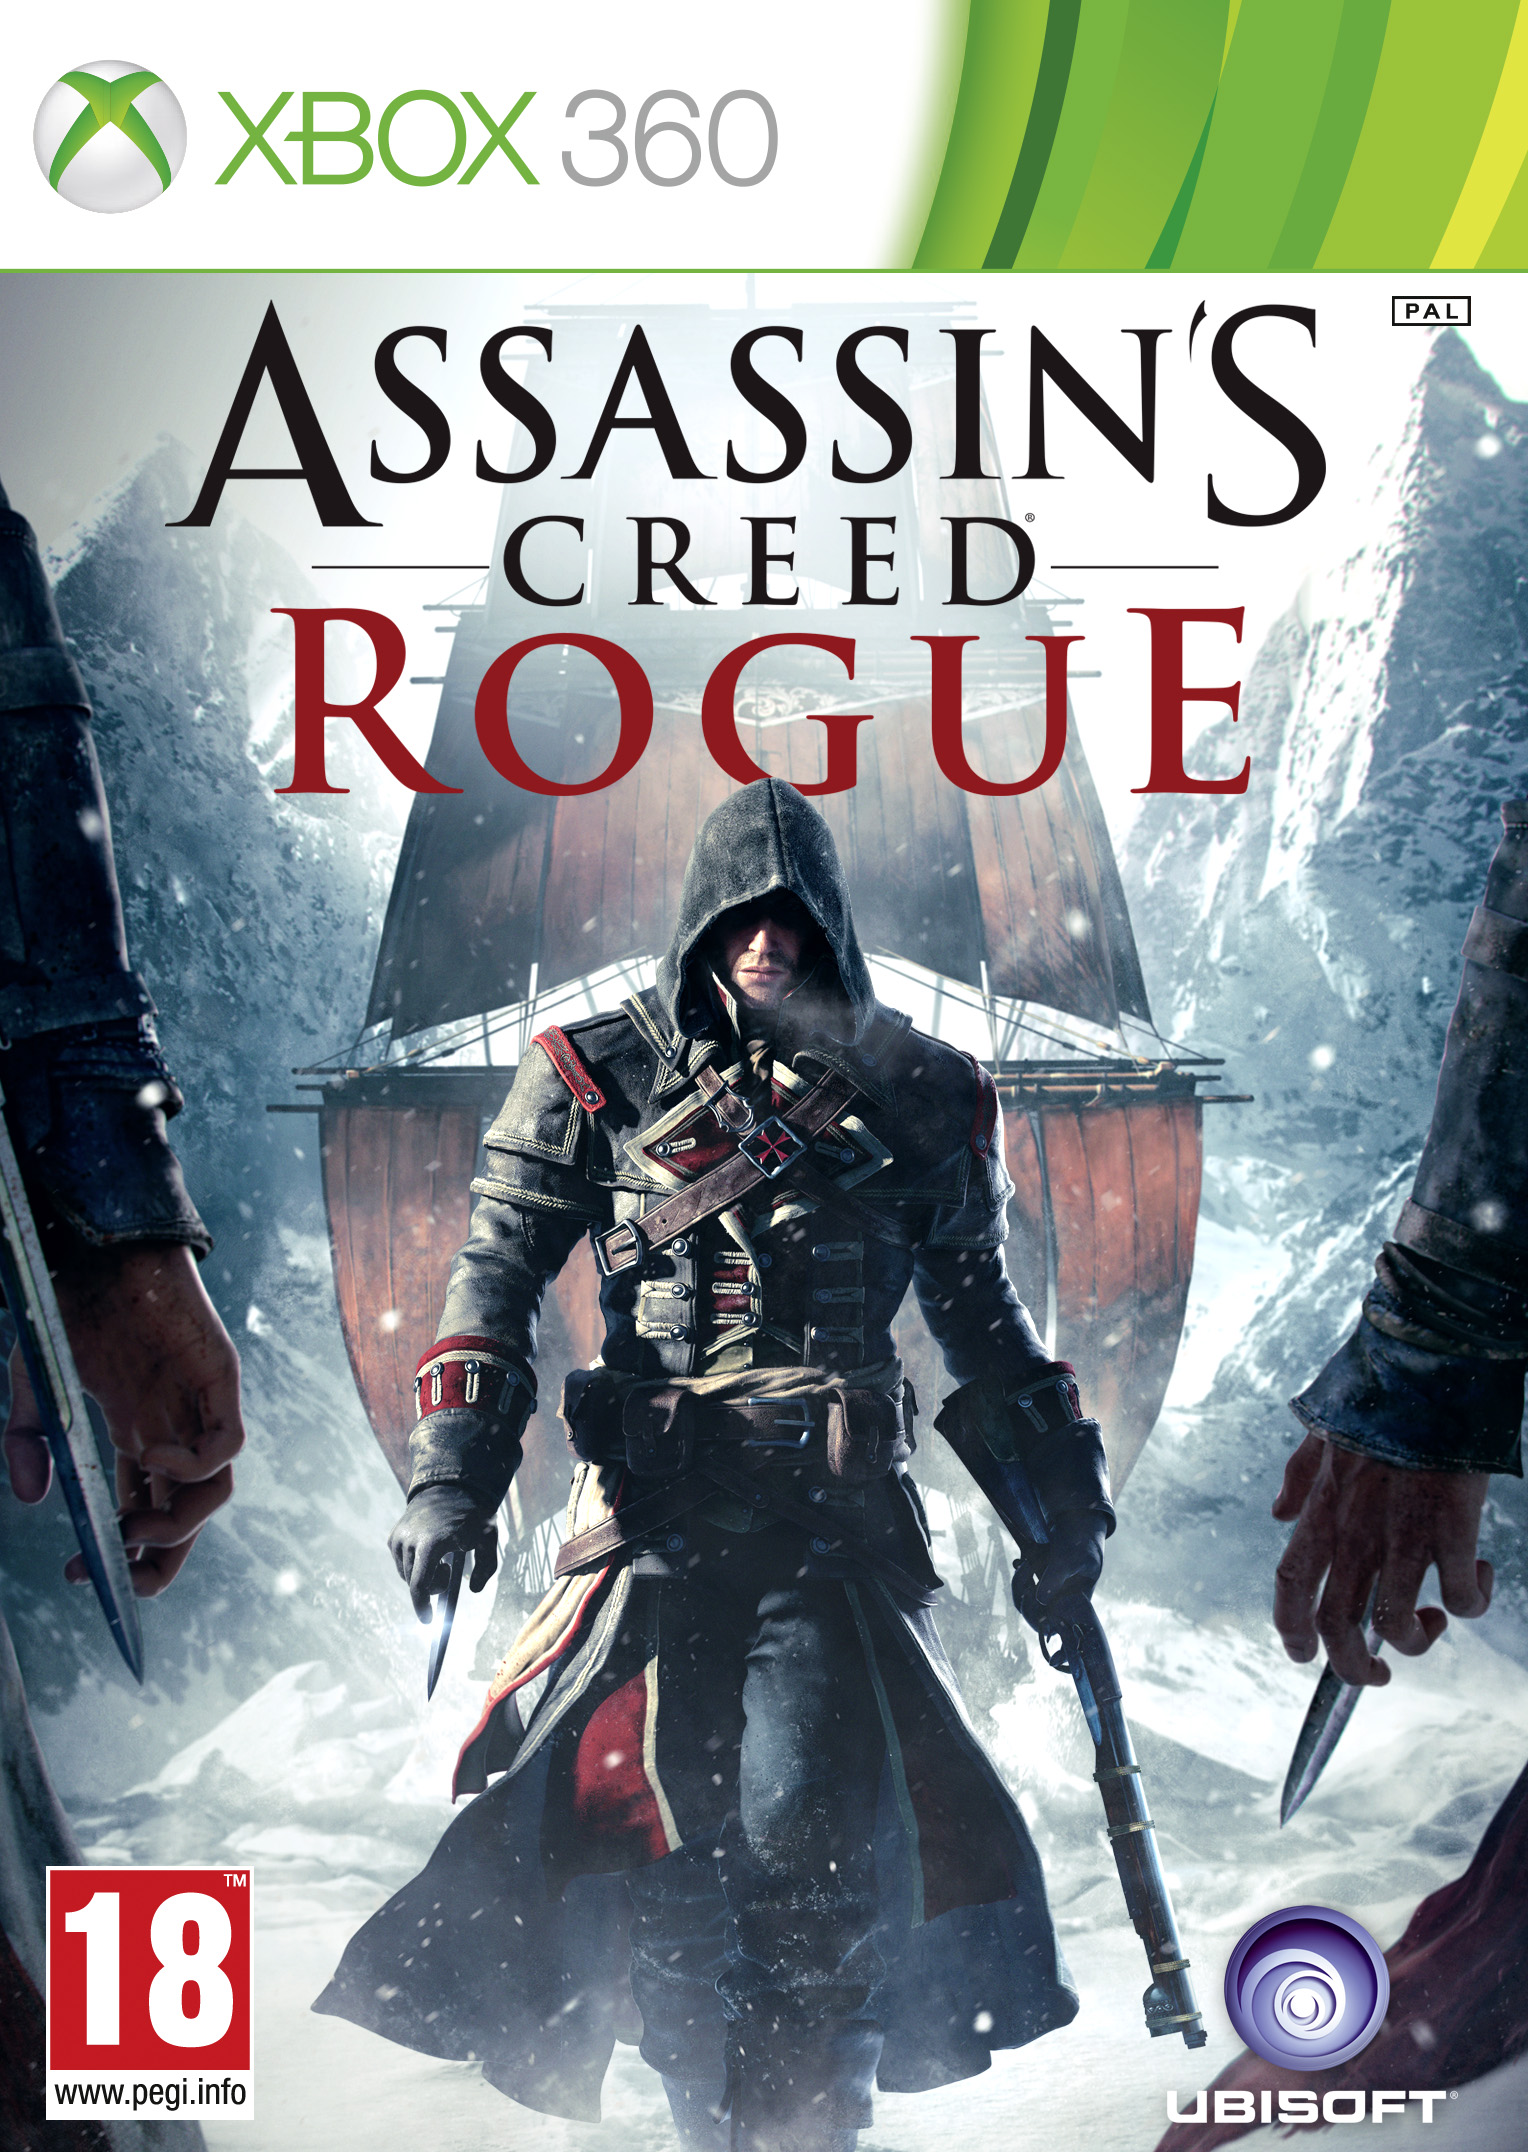 https://rozup.ir/up/narsis3/Pictures/Assassins-Creed-Rogue-xbox360-cover-large.jpg